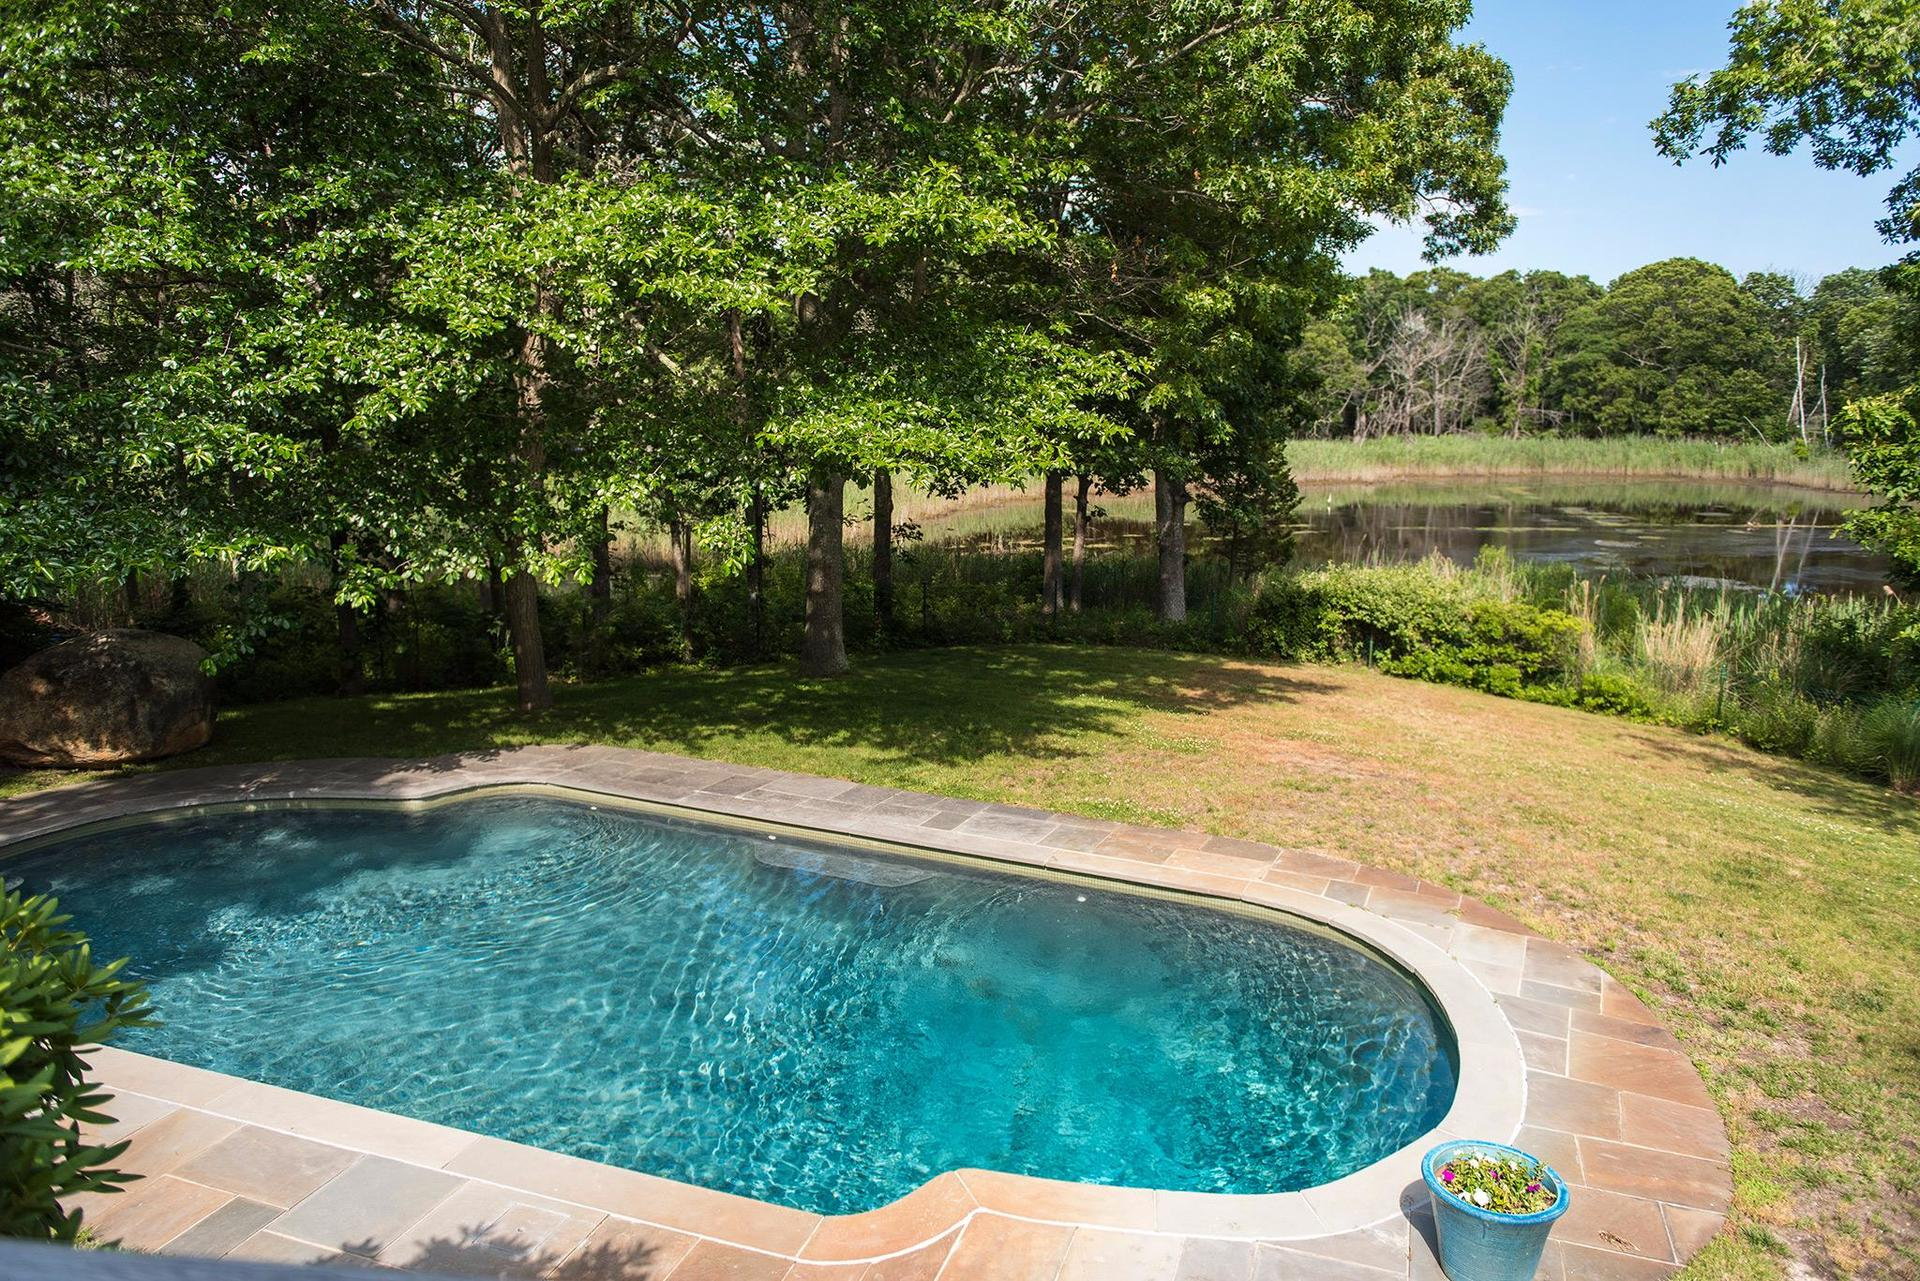 Additional photo for property listing at Shelter Island Water View With Pool  Shelter Island, Nueva York